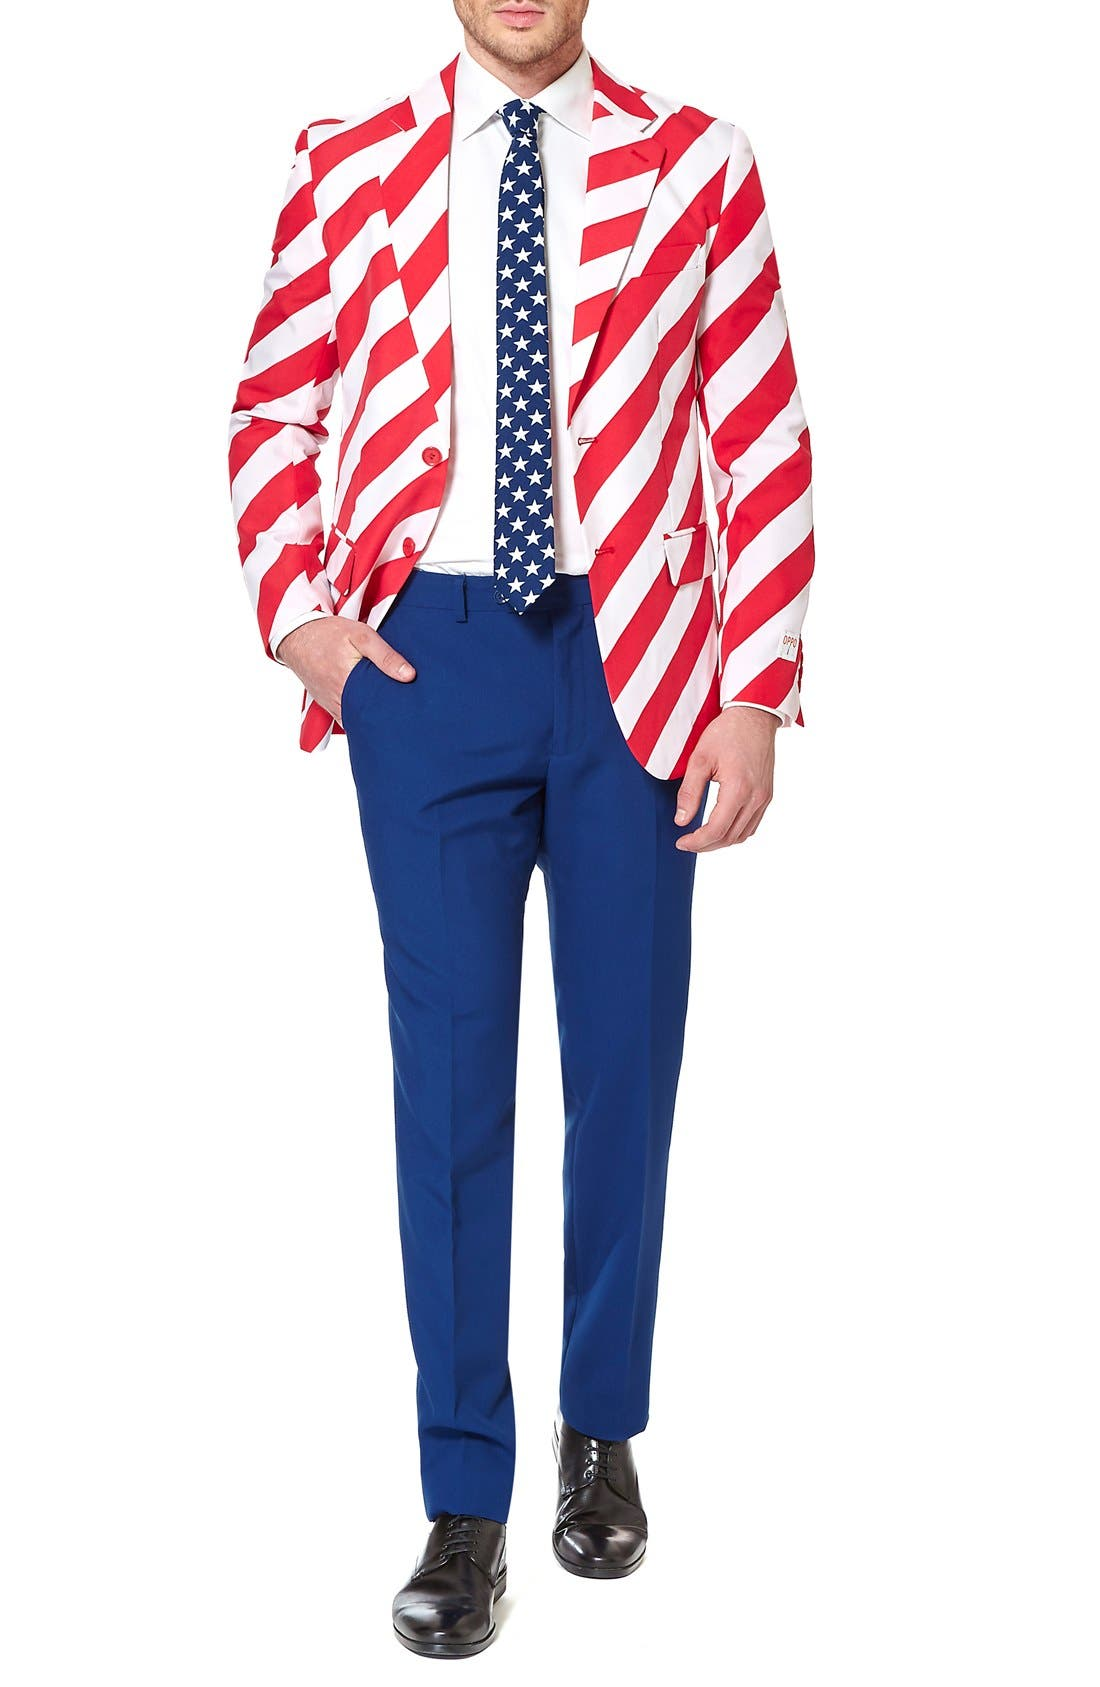 OppoSuits 'United Stripes' Trim Fit Suit with Tie